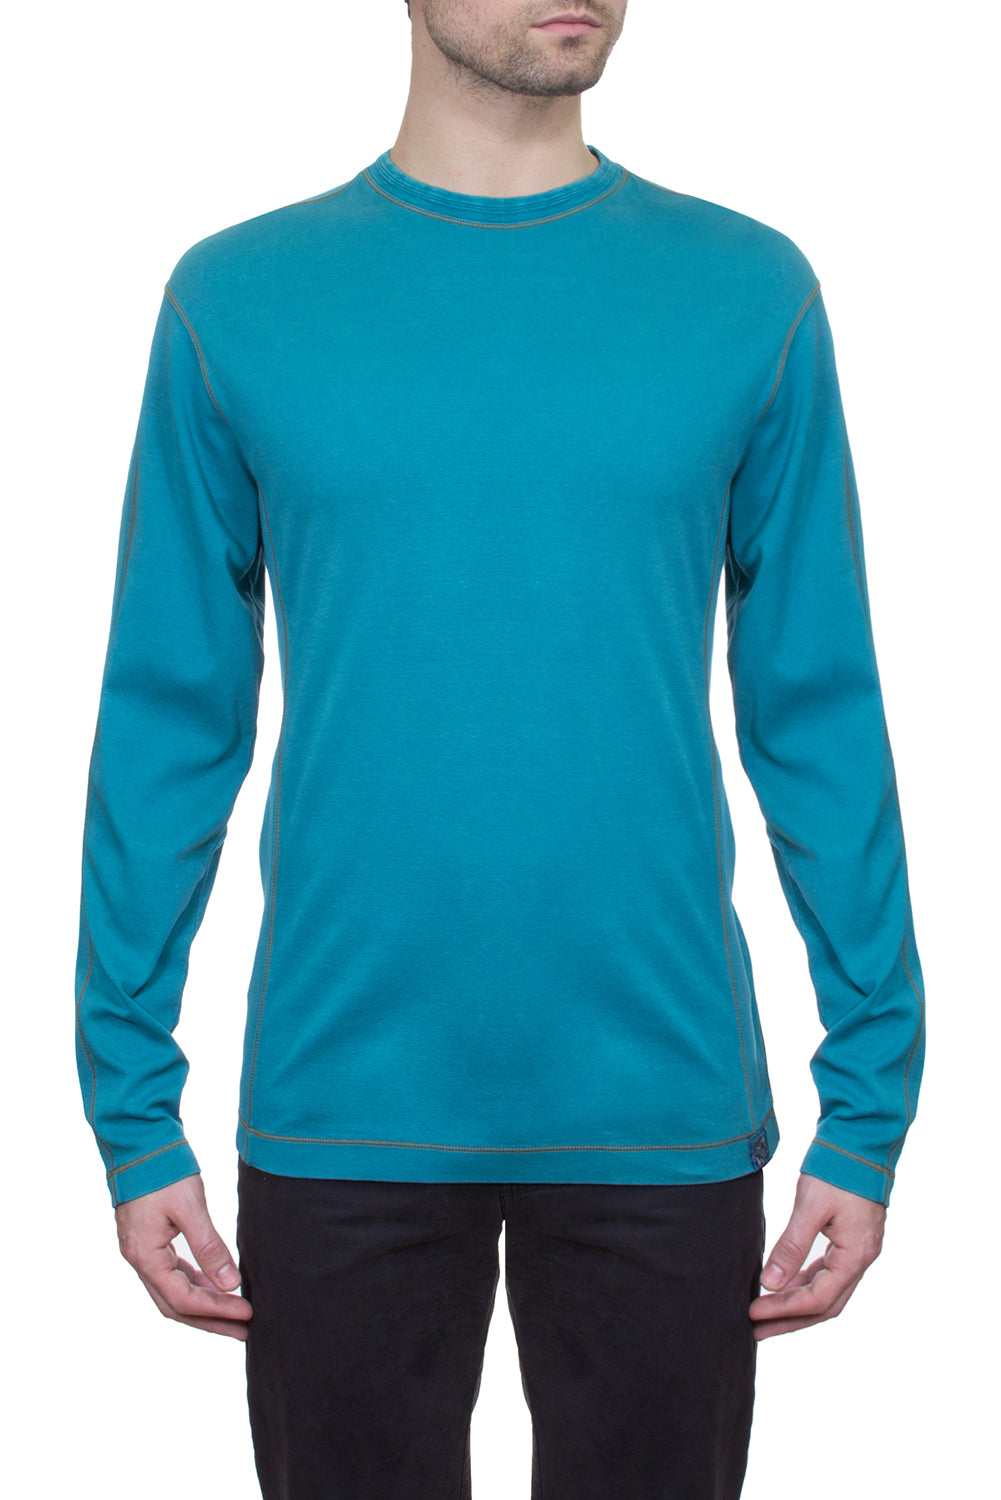 Thaddeus KENYON Long Sleeve Mixed Media Crew Neck